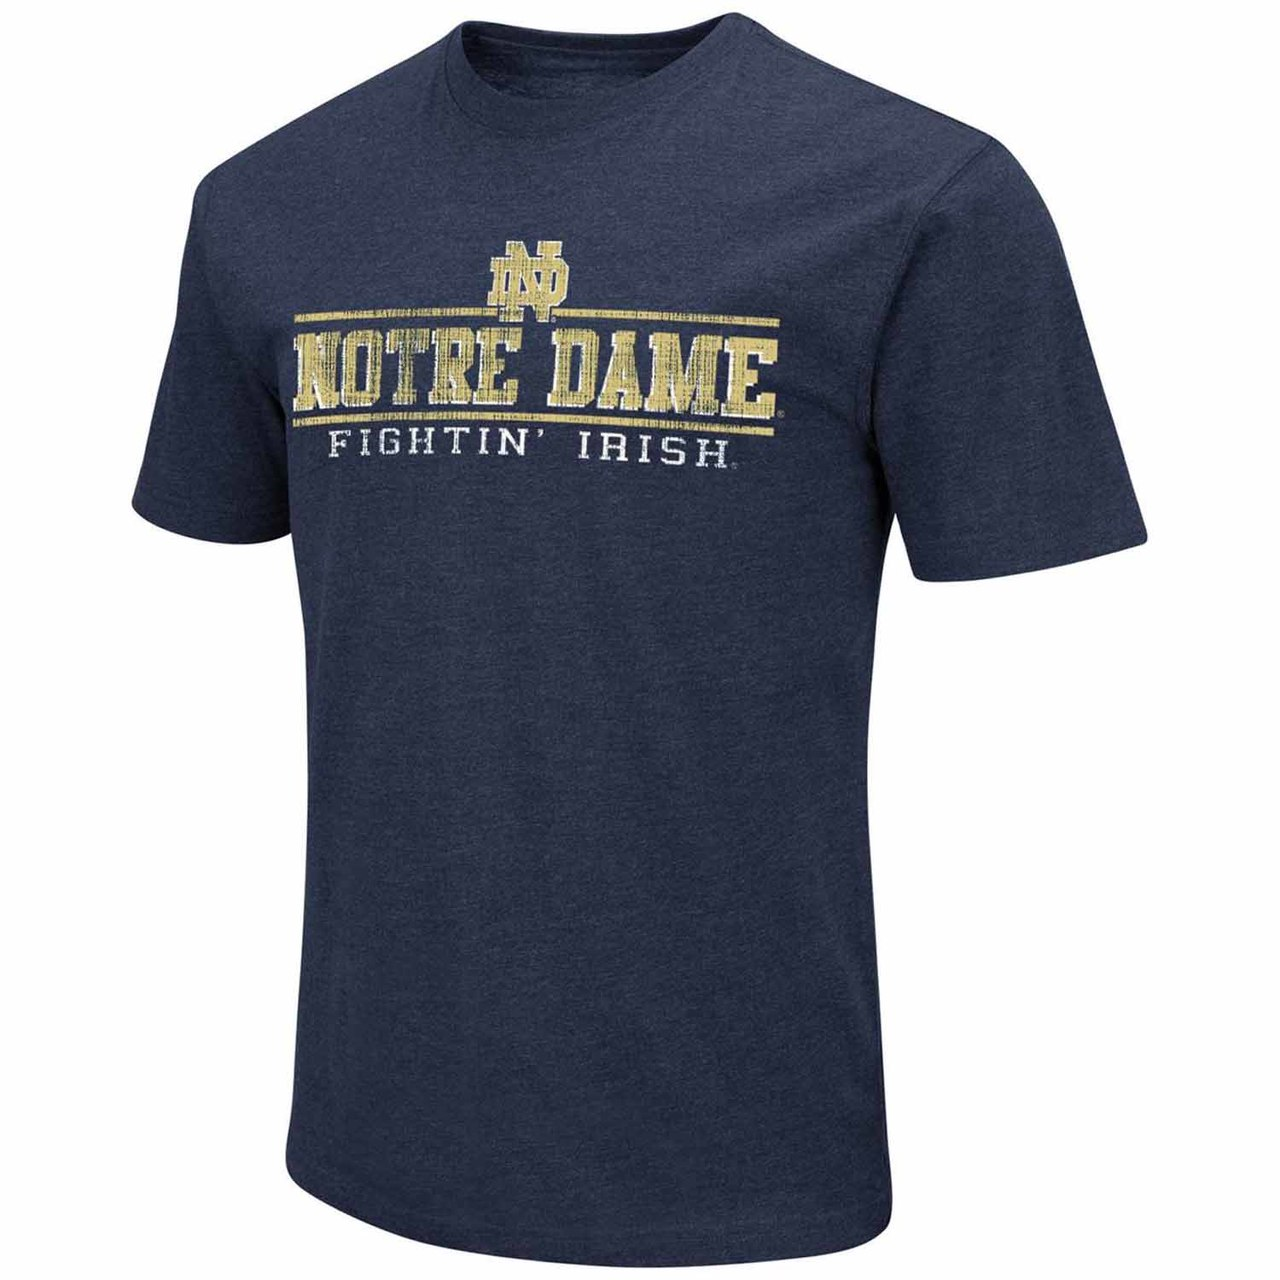 Notre Dame Fighting Irish Adult Soft Vintage Tailgate T-Shirt - Navy